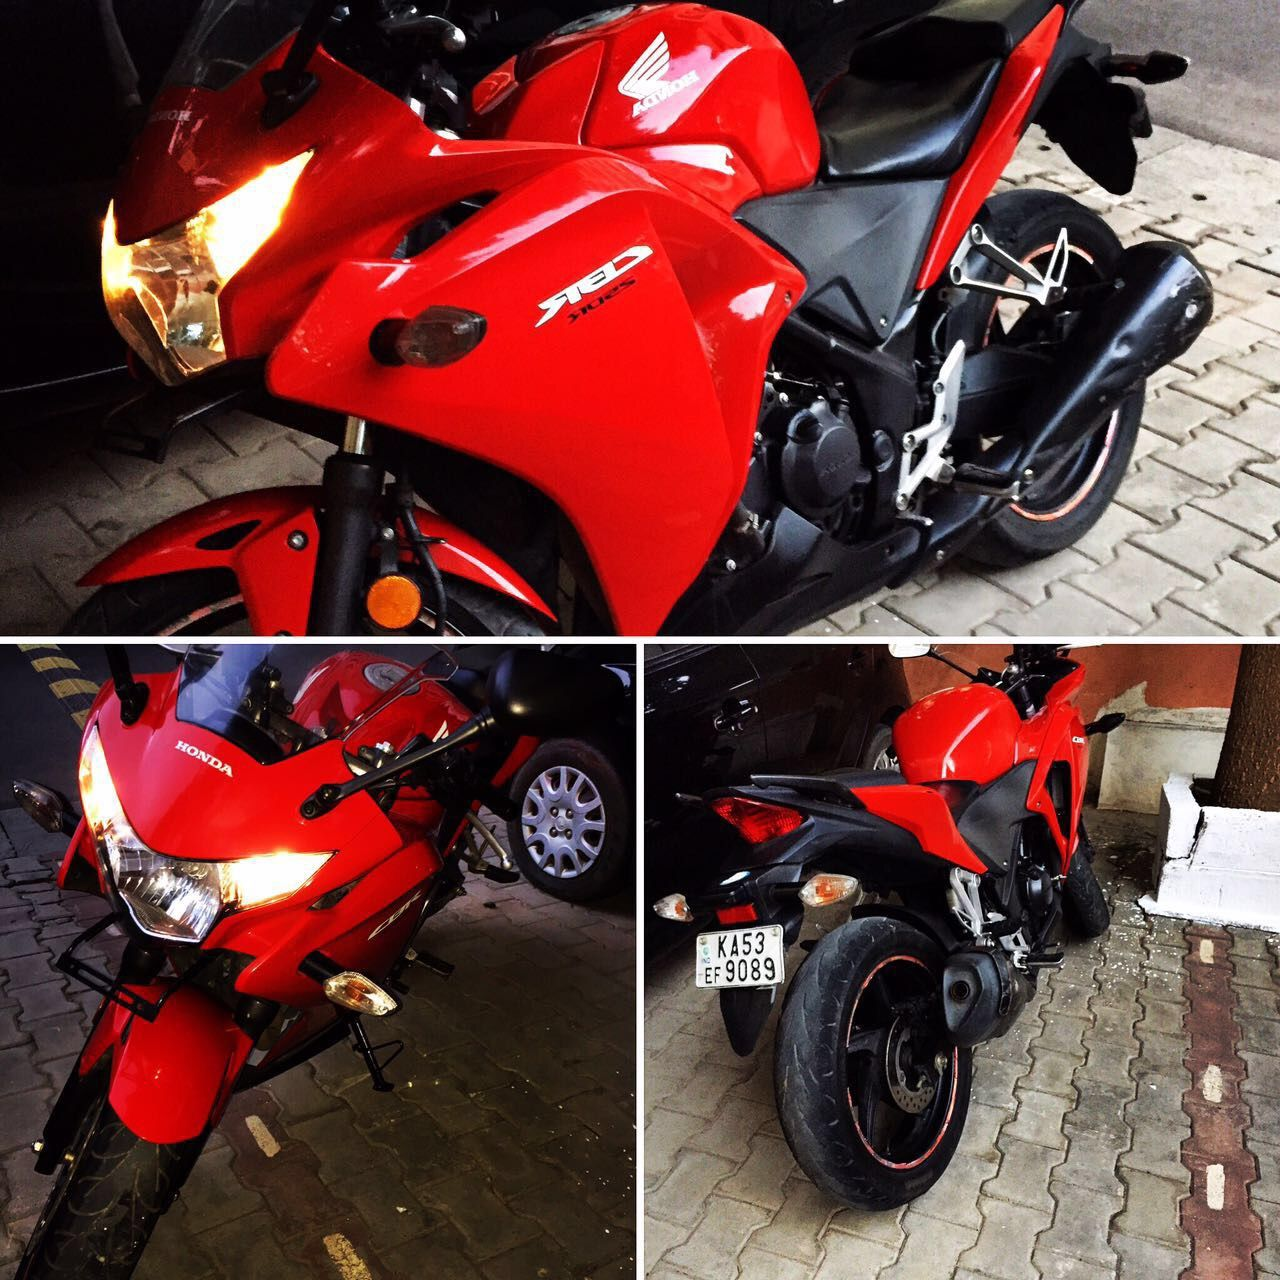 hello check this one out honda hondacbr Red 2014 from